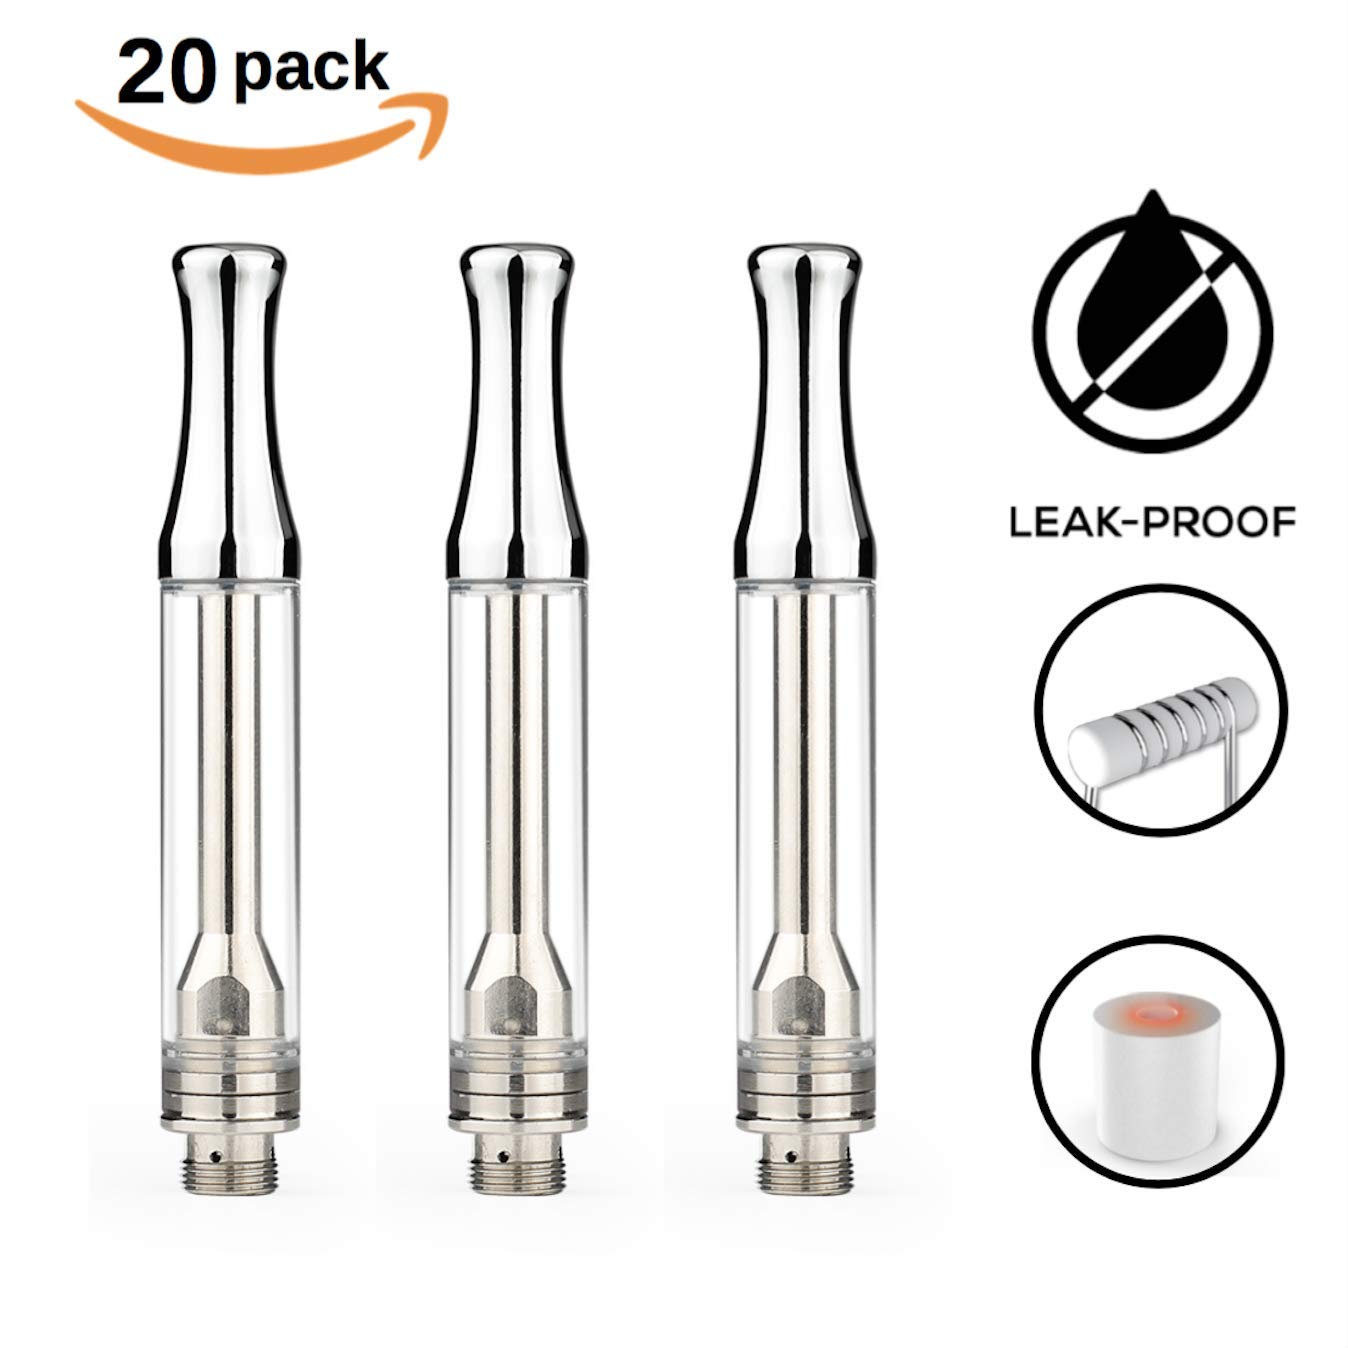 1ml Glass Ceramic Wickless Cartridge AC-1003 1.2mm Air Holes | for Full Hemp Extract, Concentrates, Thin Contents (Silver) (20)